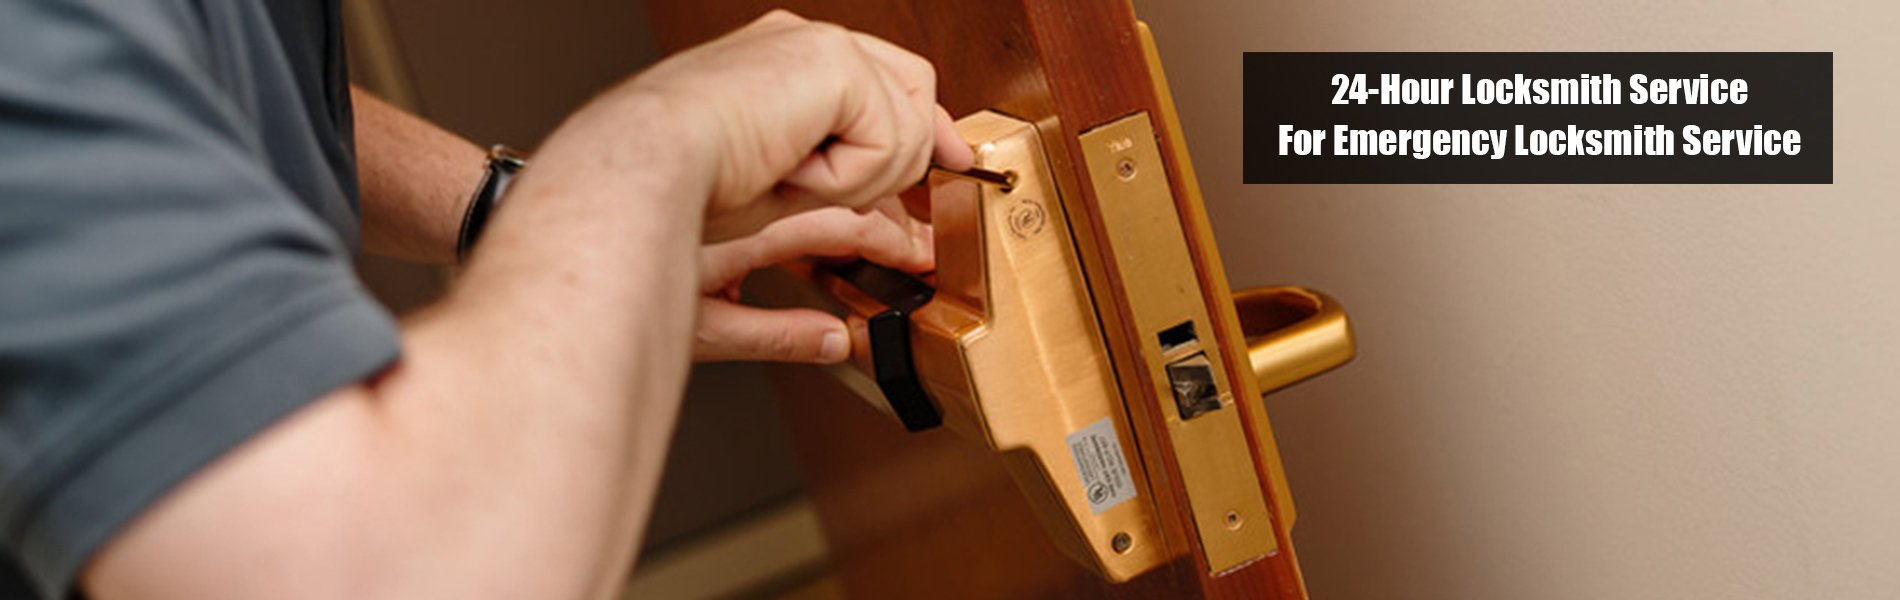 Denver Express Locksmith, Denver, CO 303-357-8302